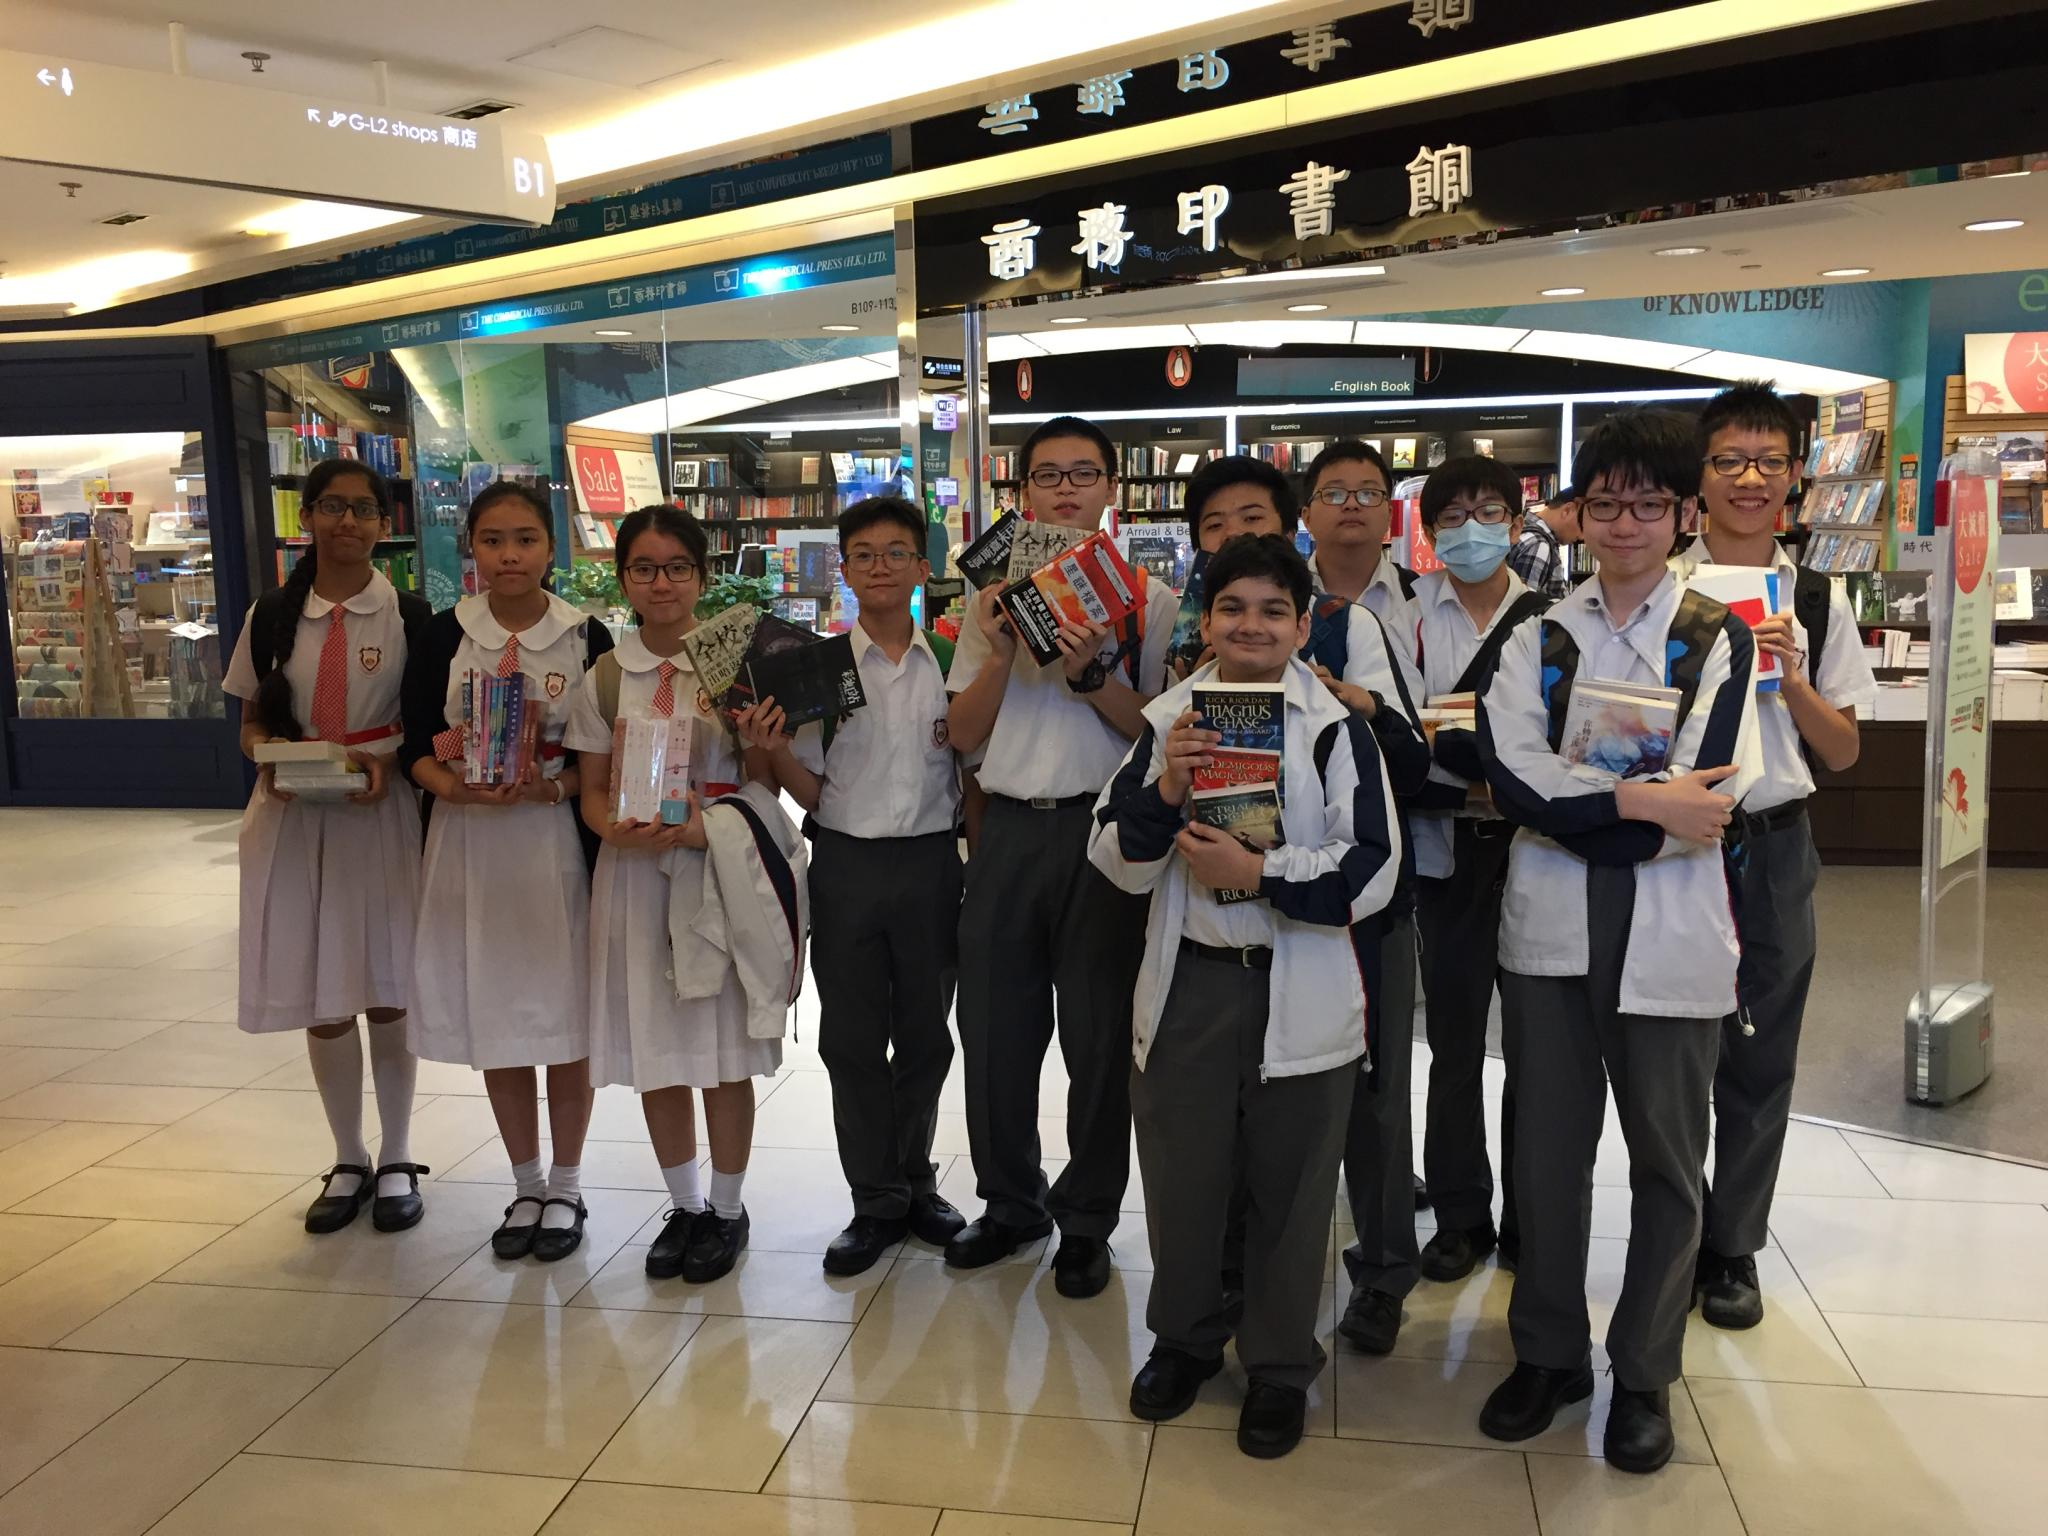 Participants are taking a group photo with their books in front of the book store.